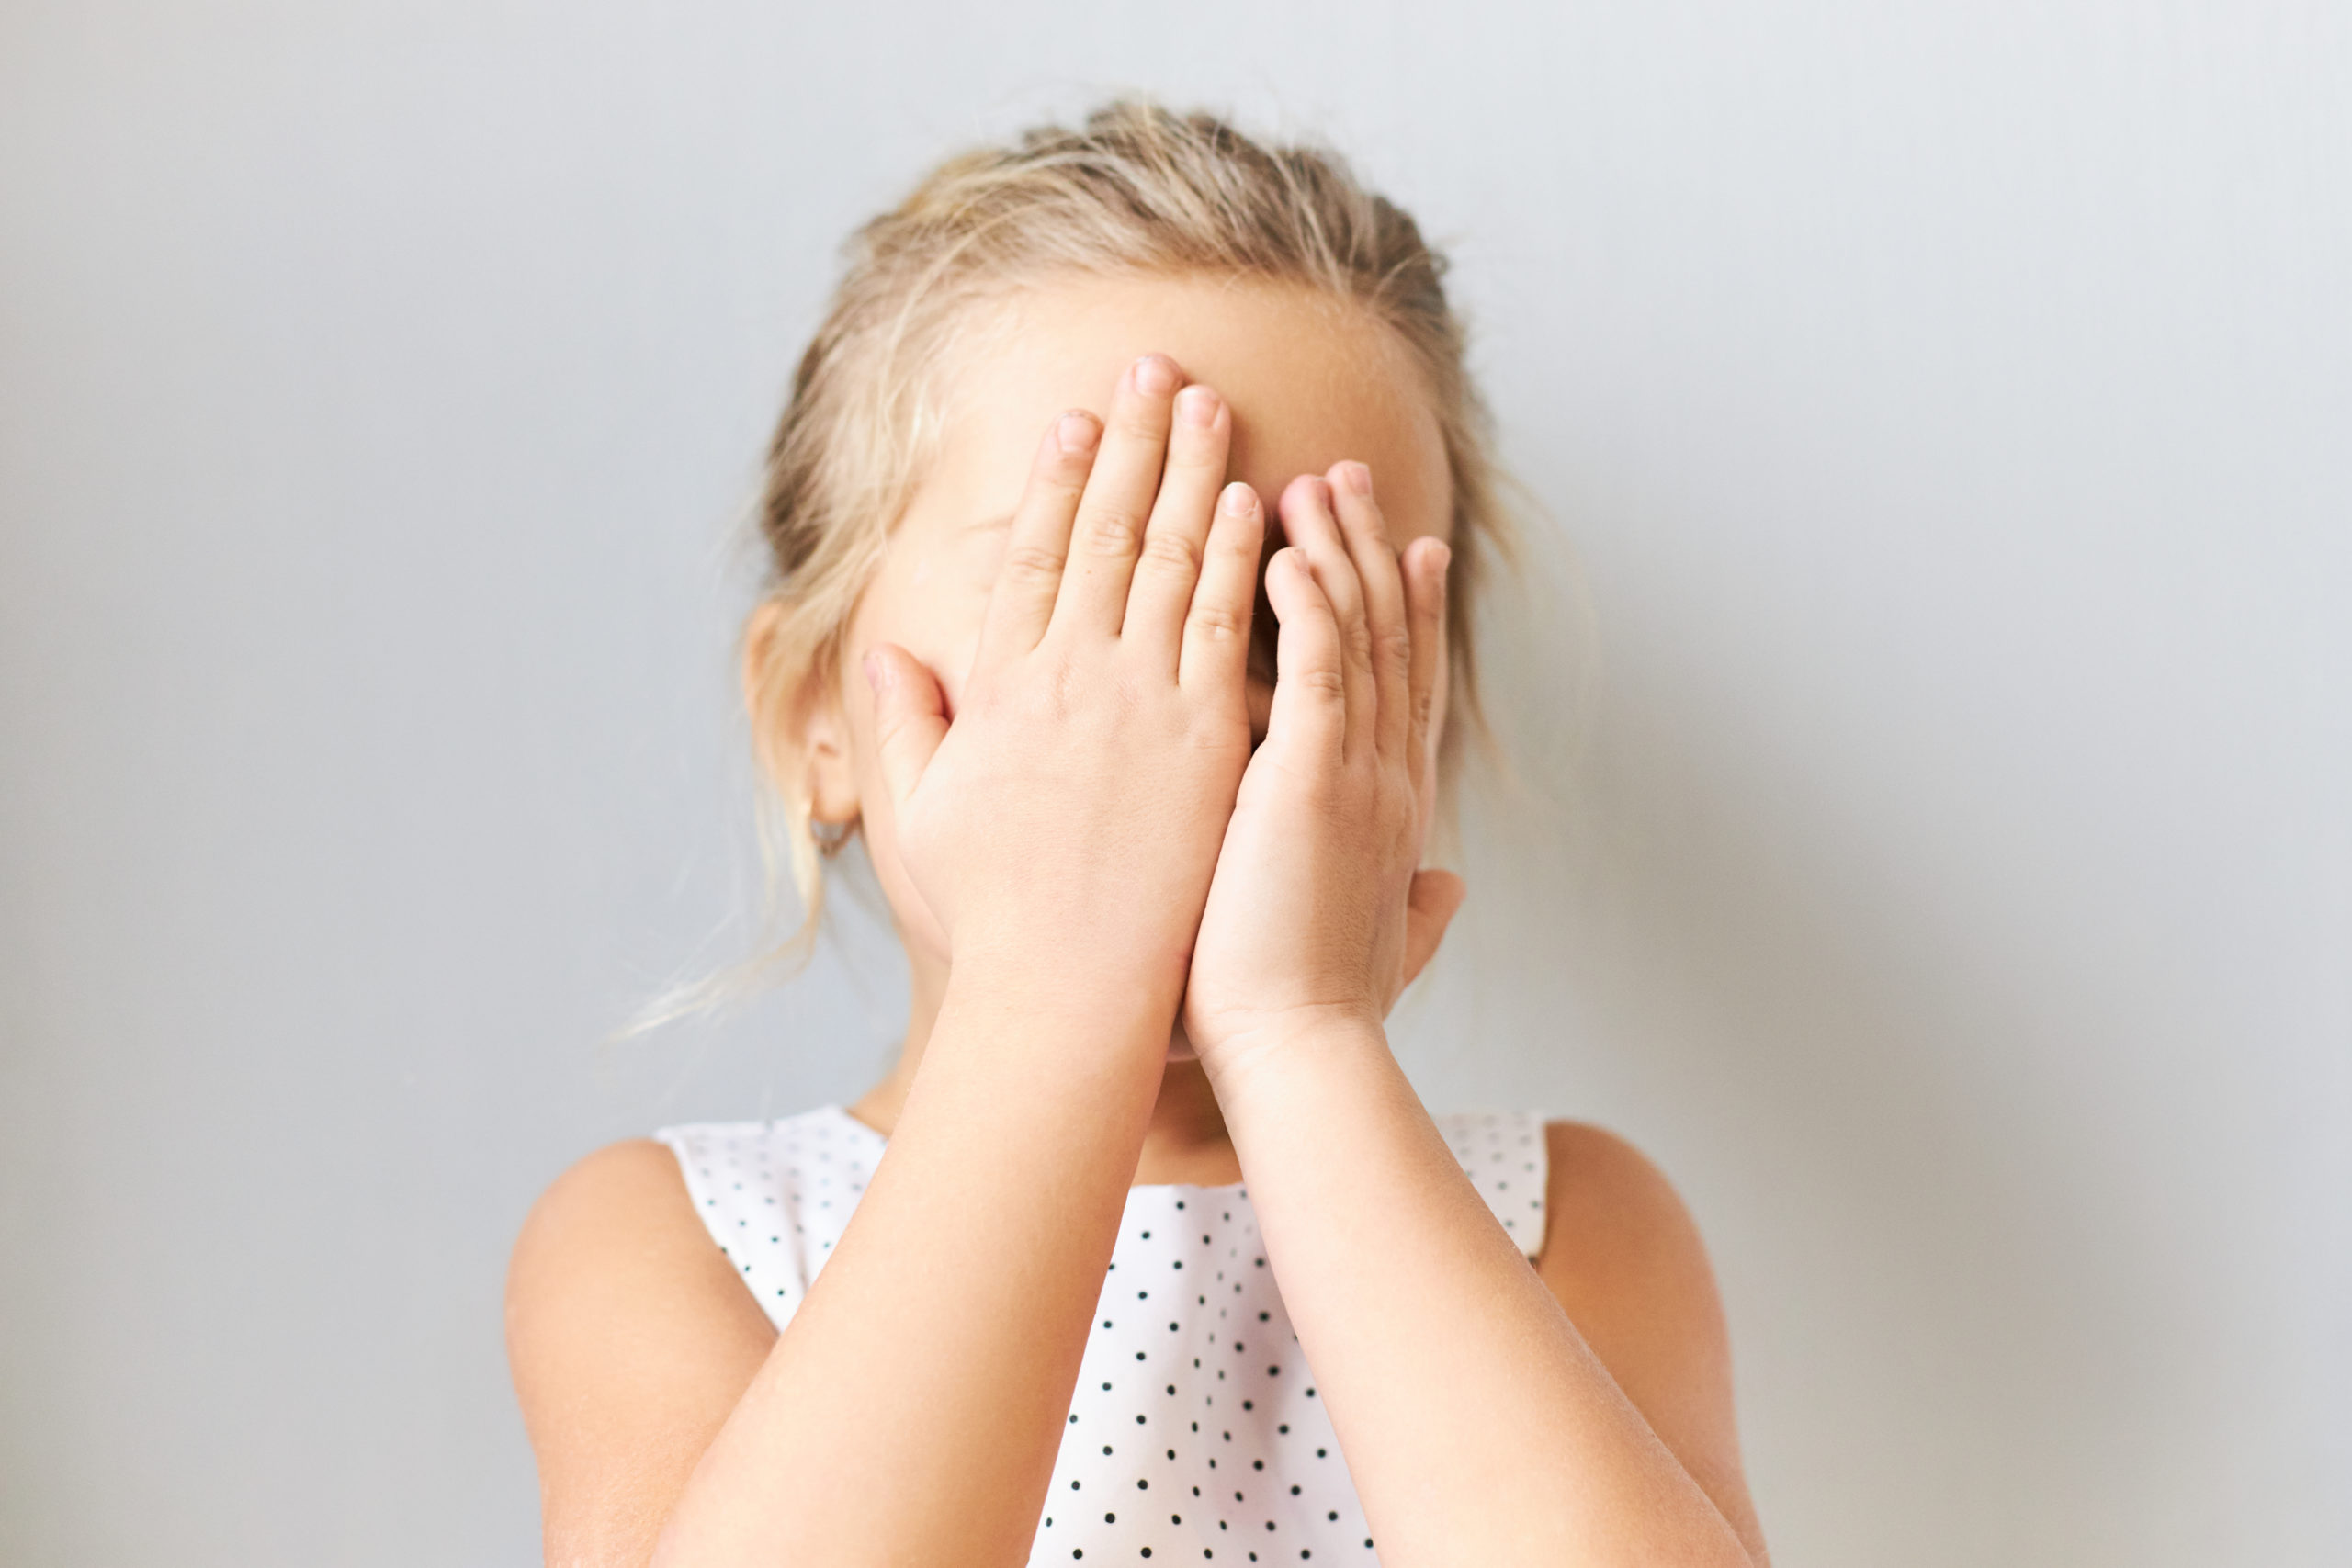 Shy timid little girl covering face, feeling scared. Embarrassed female kid posing isolated with hands on her eyes, crying, feeling ashamed because mother telling her off. Baby playing hide and seek